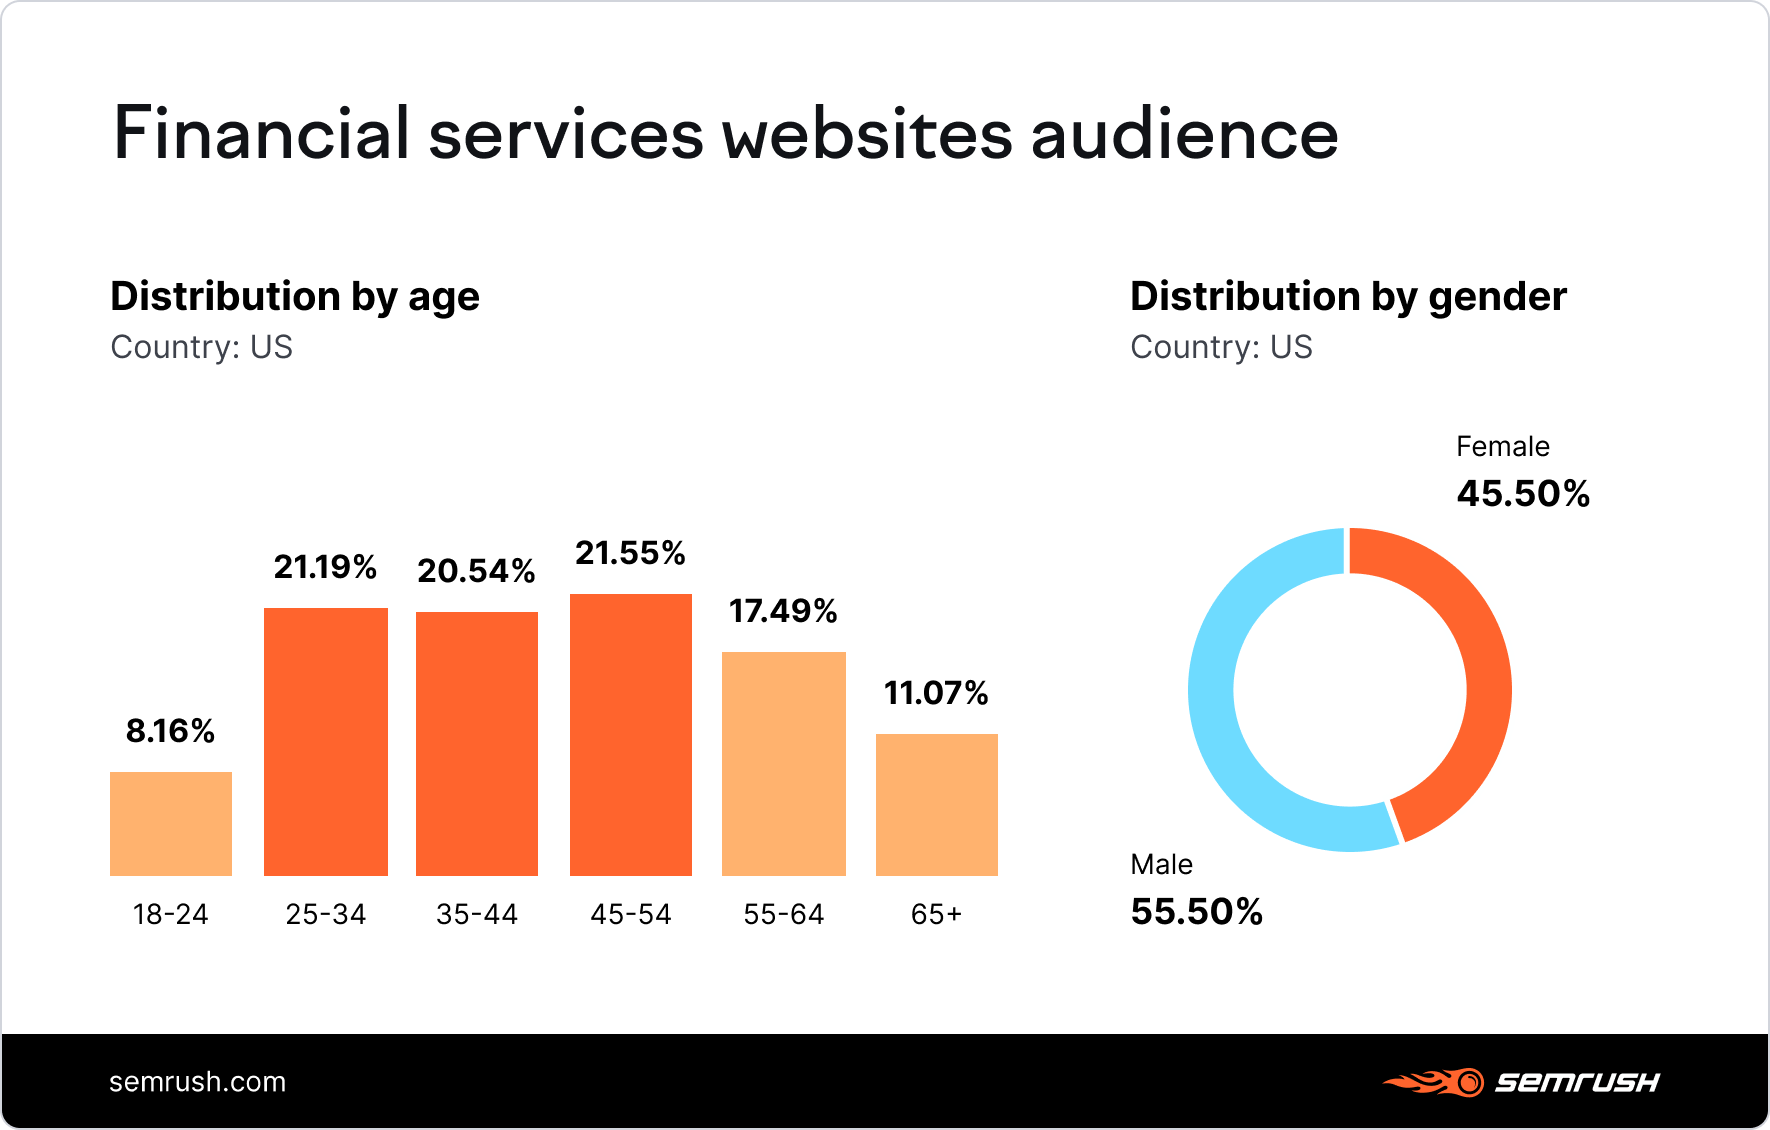 Financial services websites audience